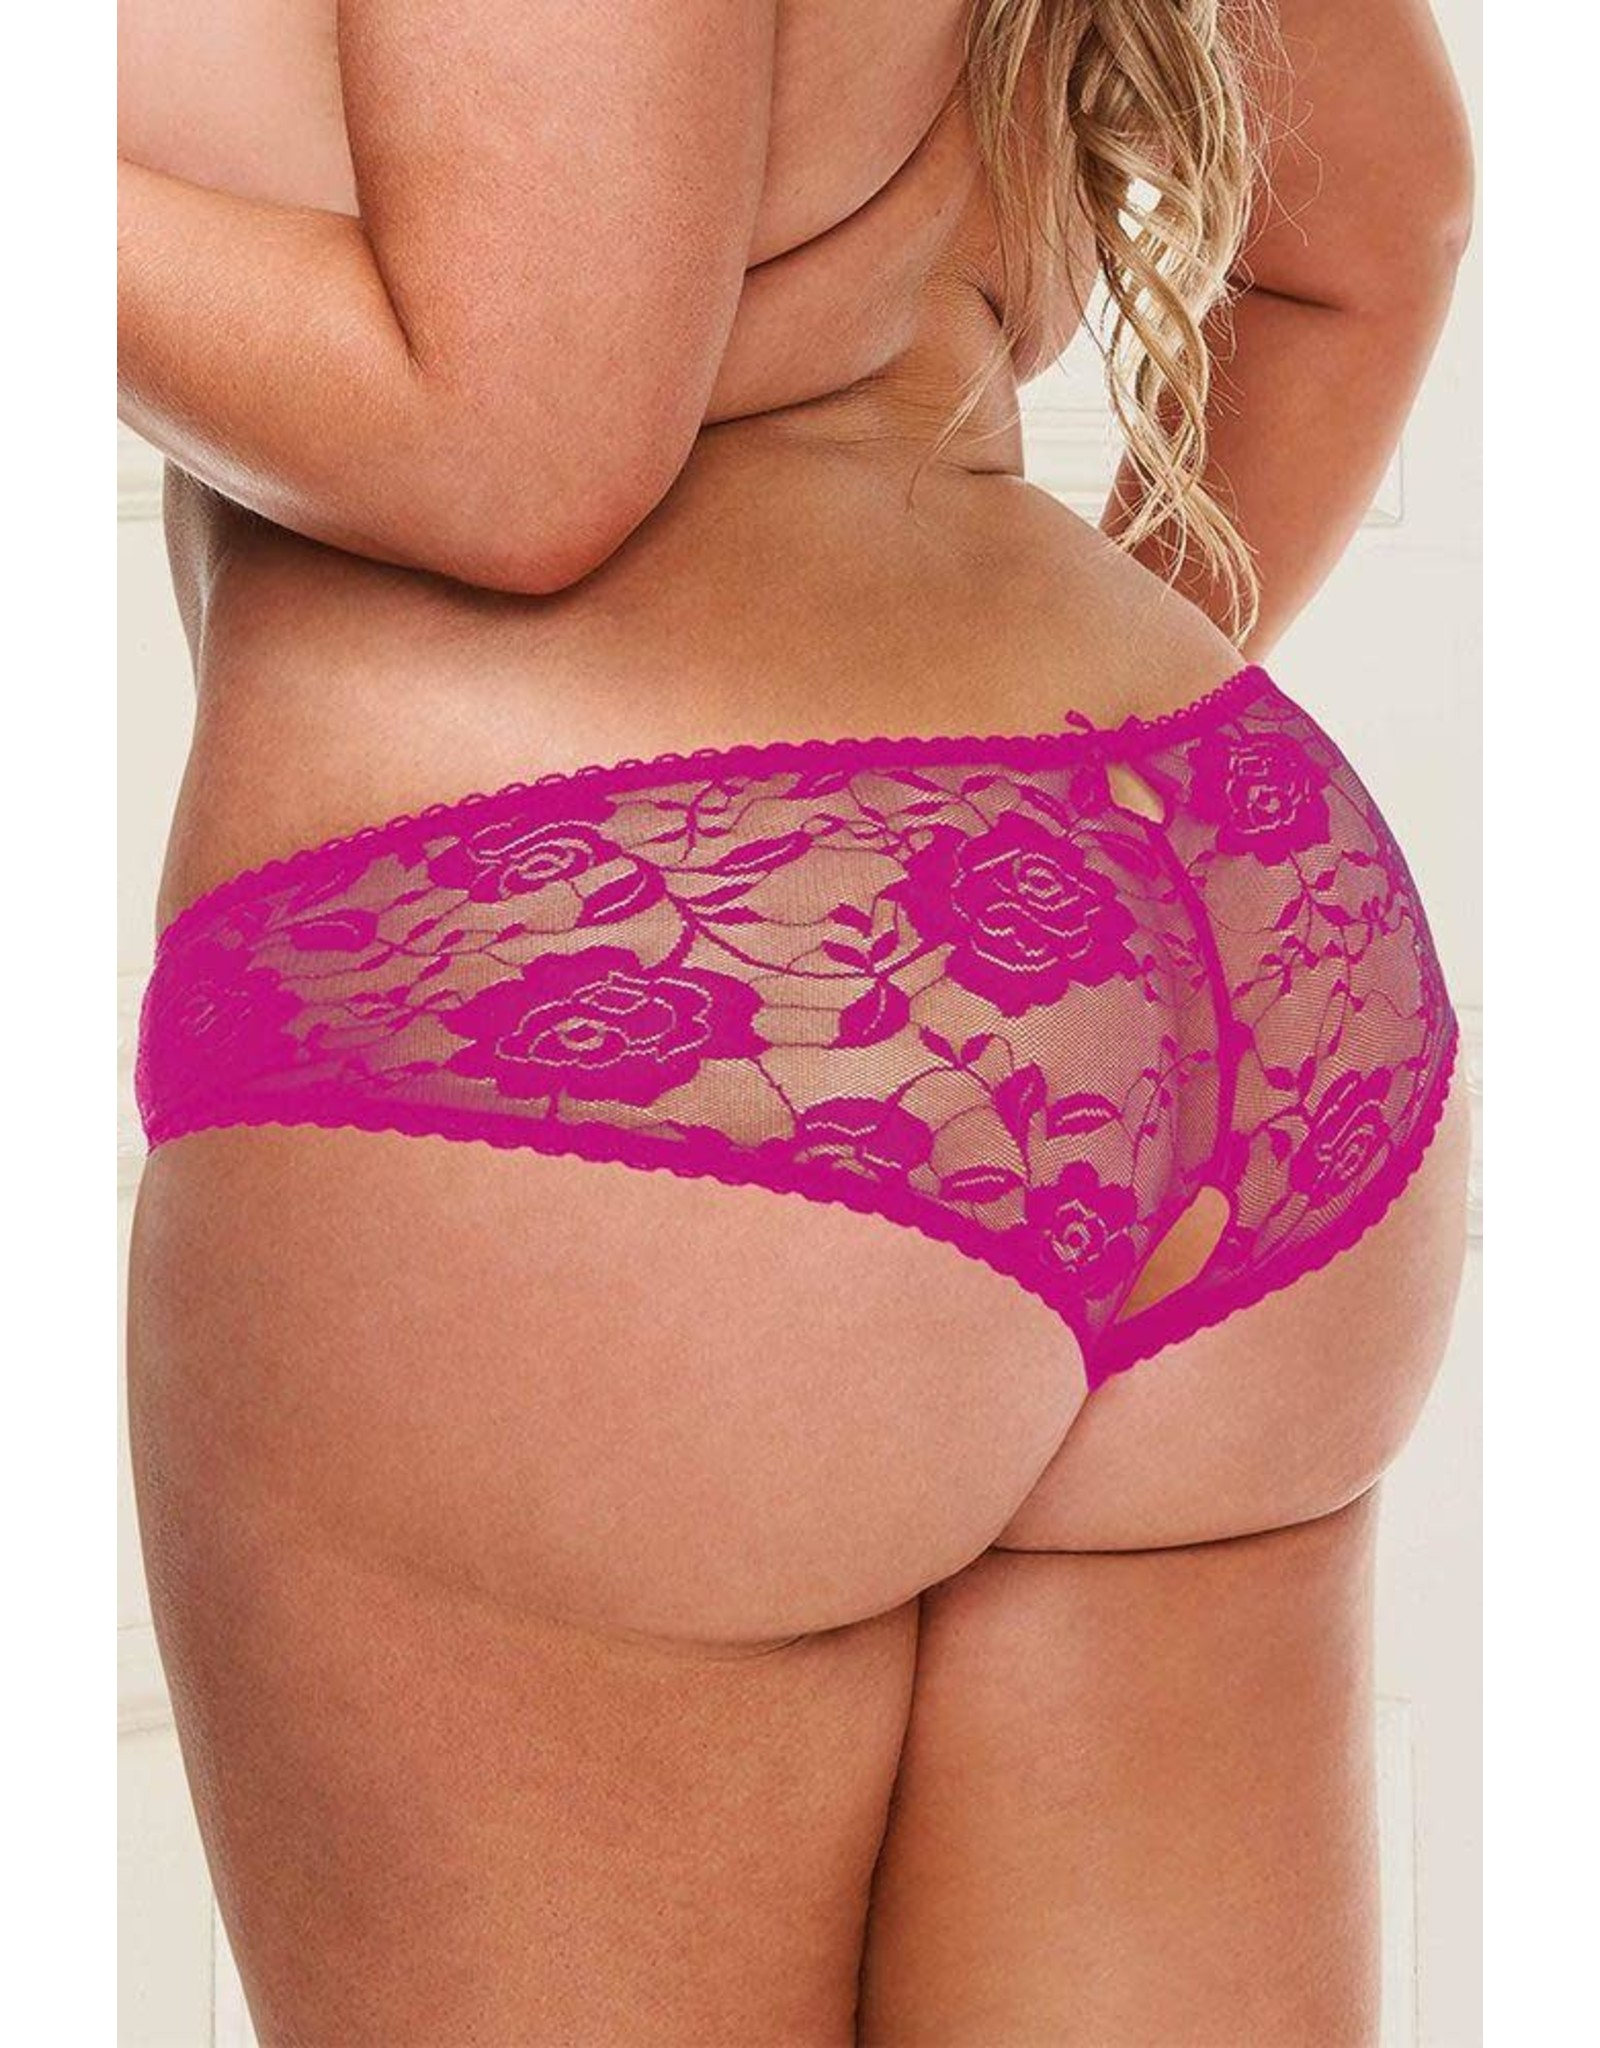 BACI - BEST-LACE SCENARIO OPEN CROTCH HOT PINK PANTY 1X/2X